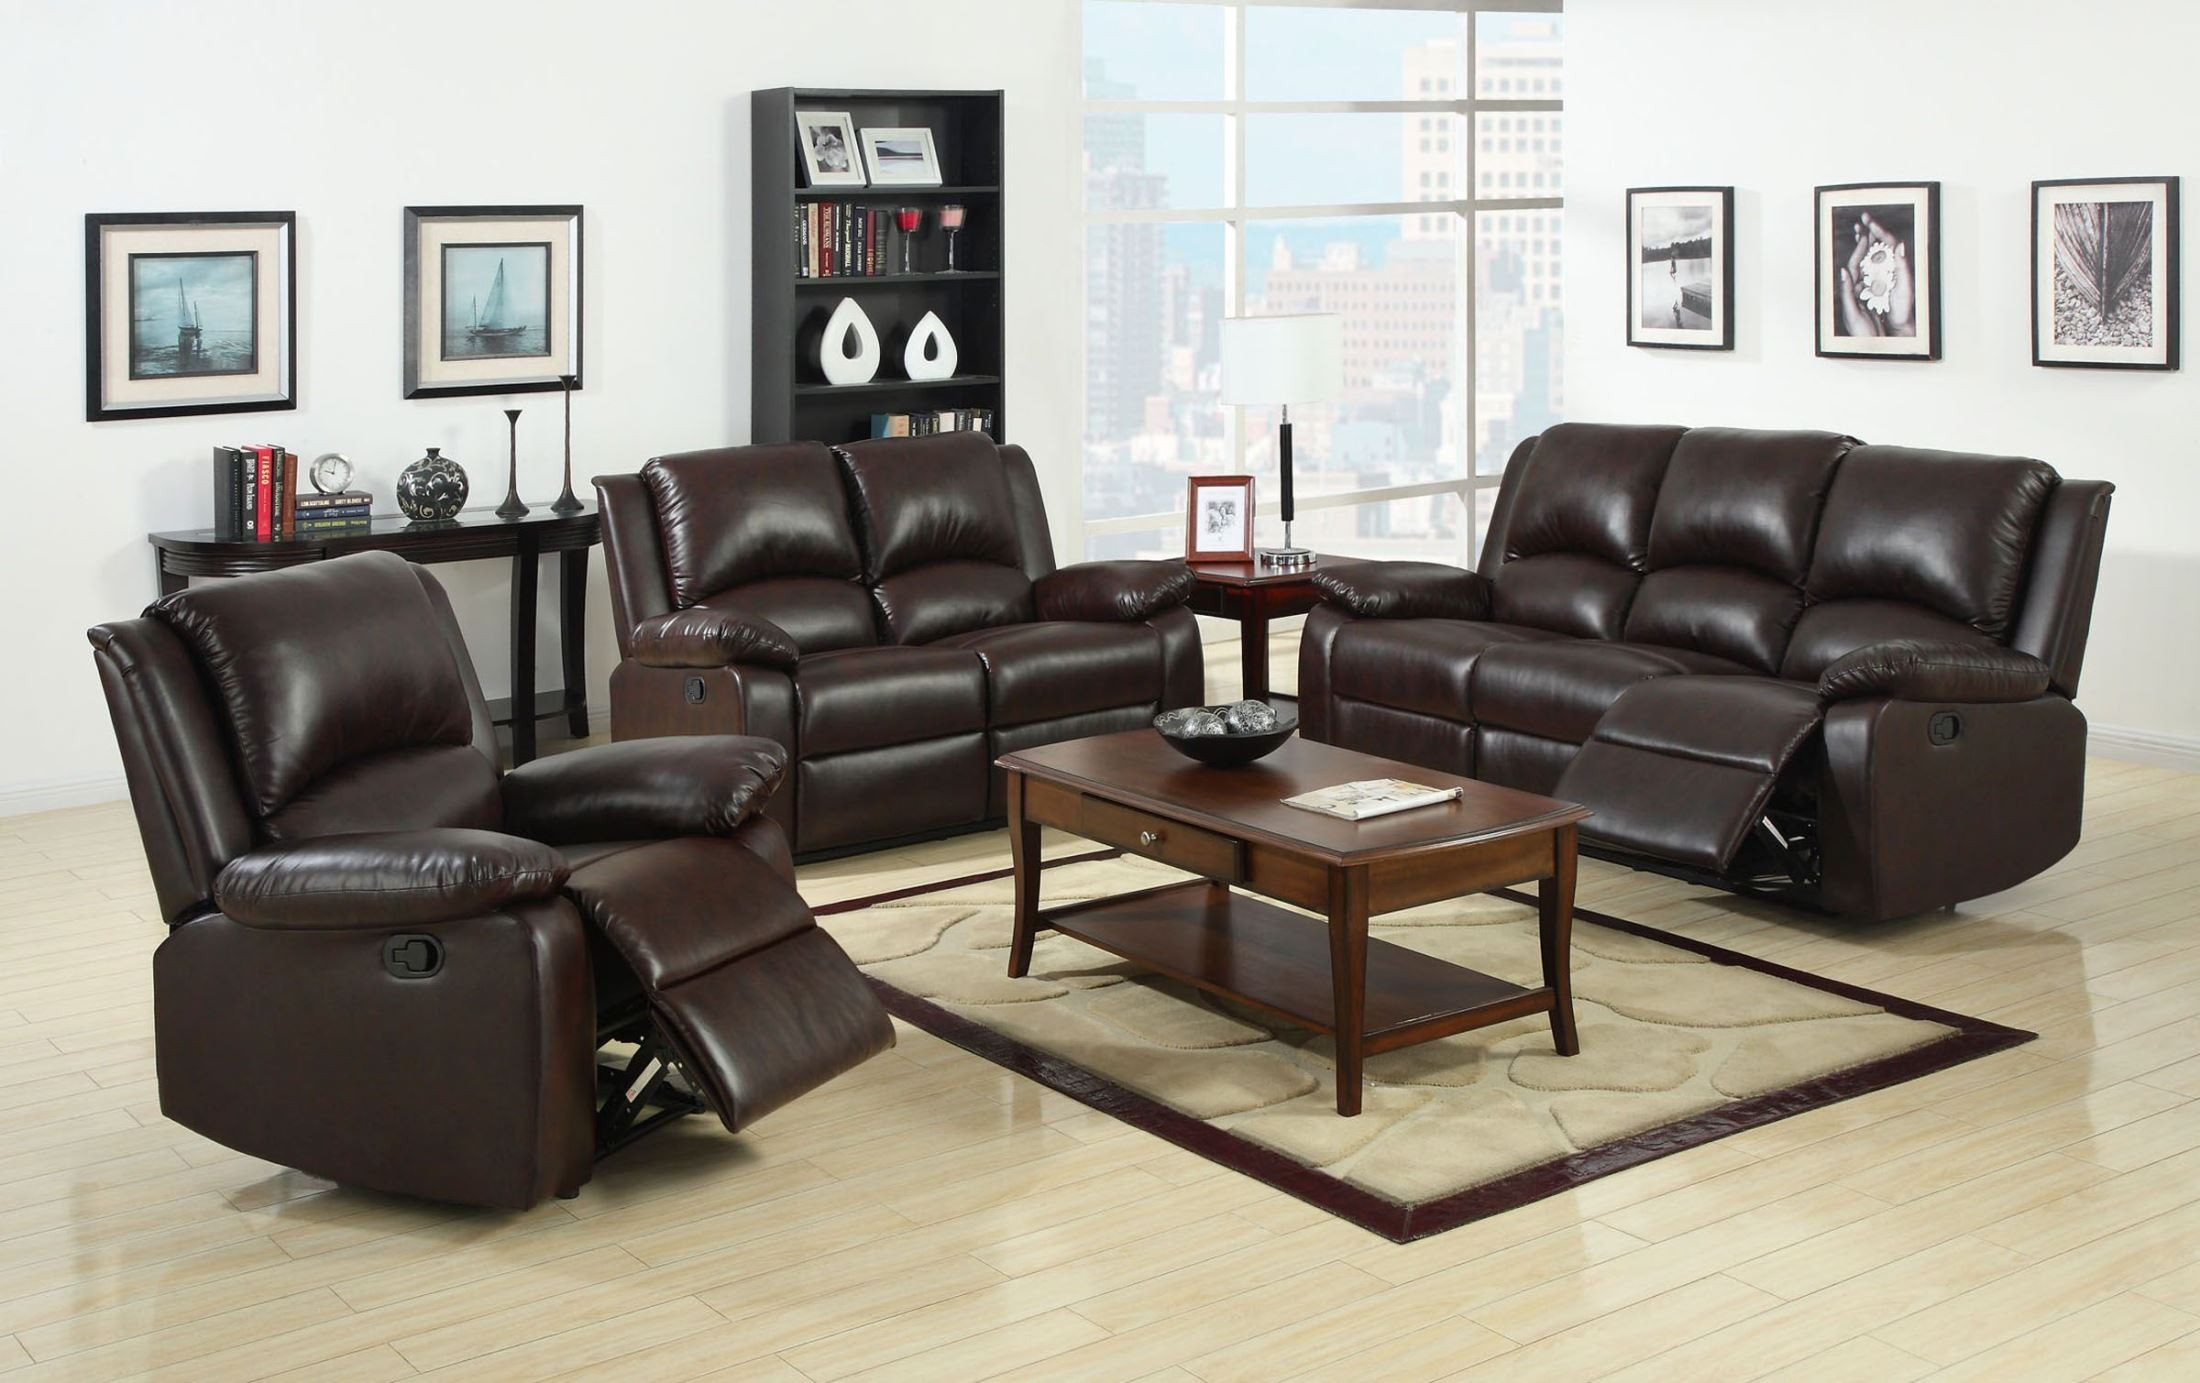 Oxford Rustic Dark Brown Leatherette Reclining Living Room